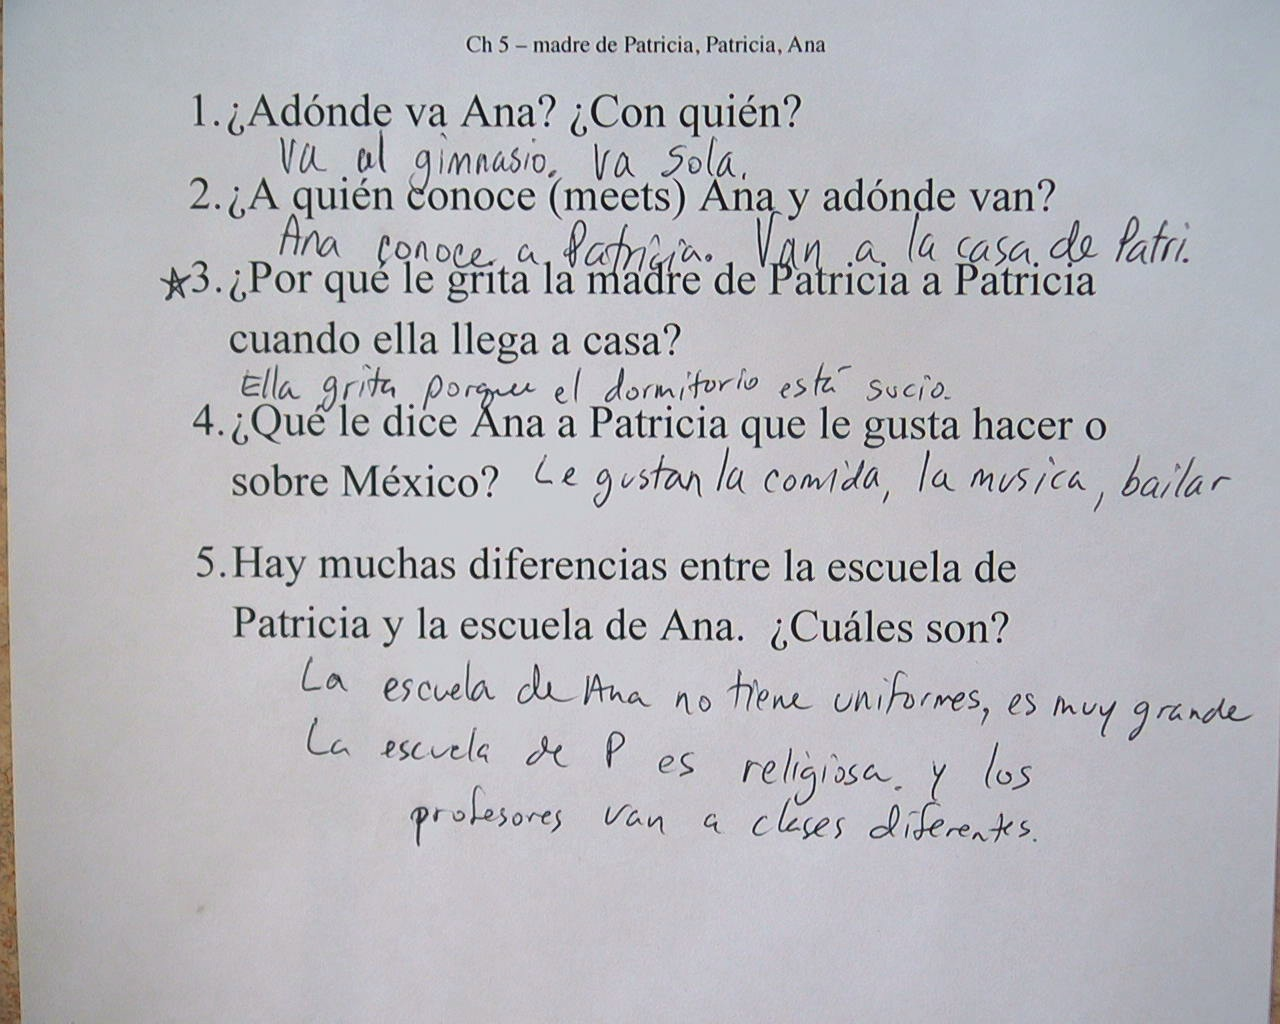 worksheet Pobre Ana Worksheets pobre ana answers related keywords suggestions we read chapter 5 the discussion questions are posted